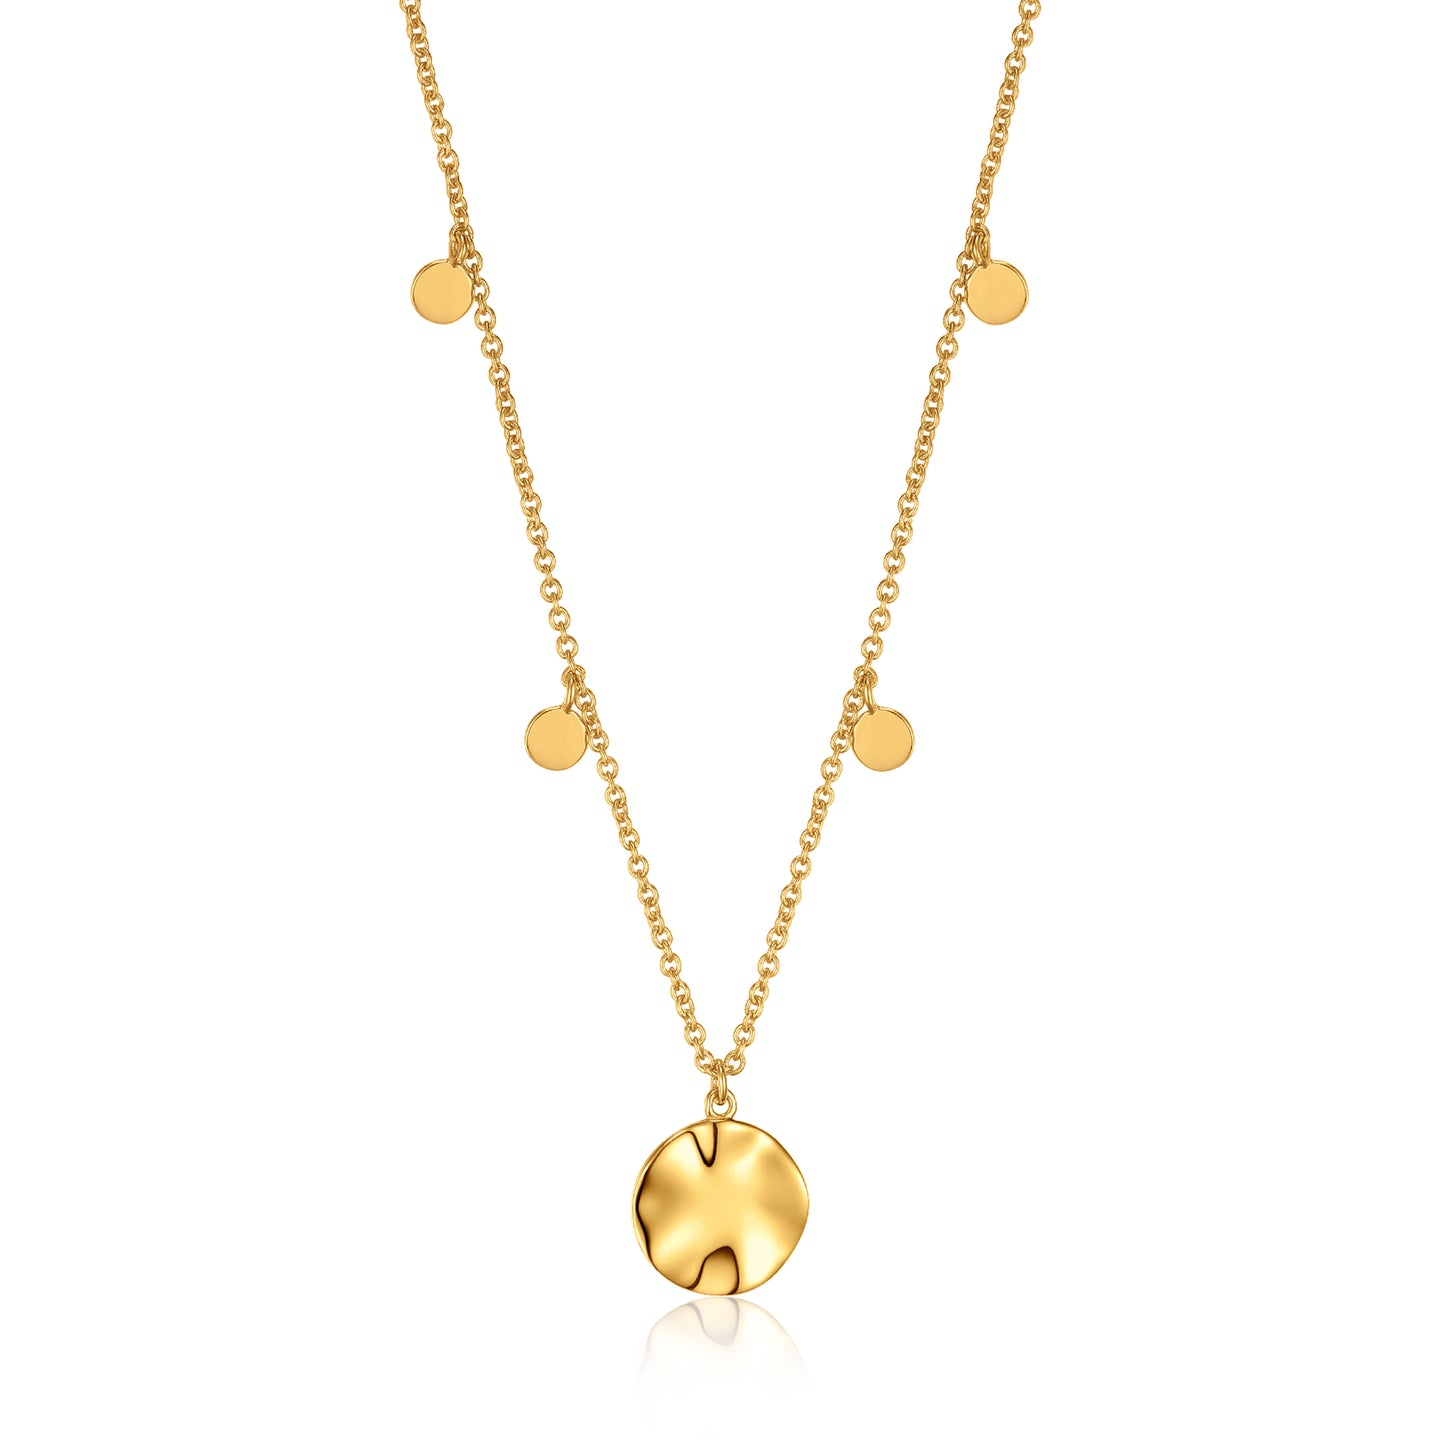 Gold Ripple Drop Discs Necklace N007-04G